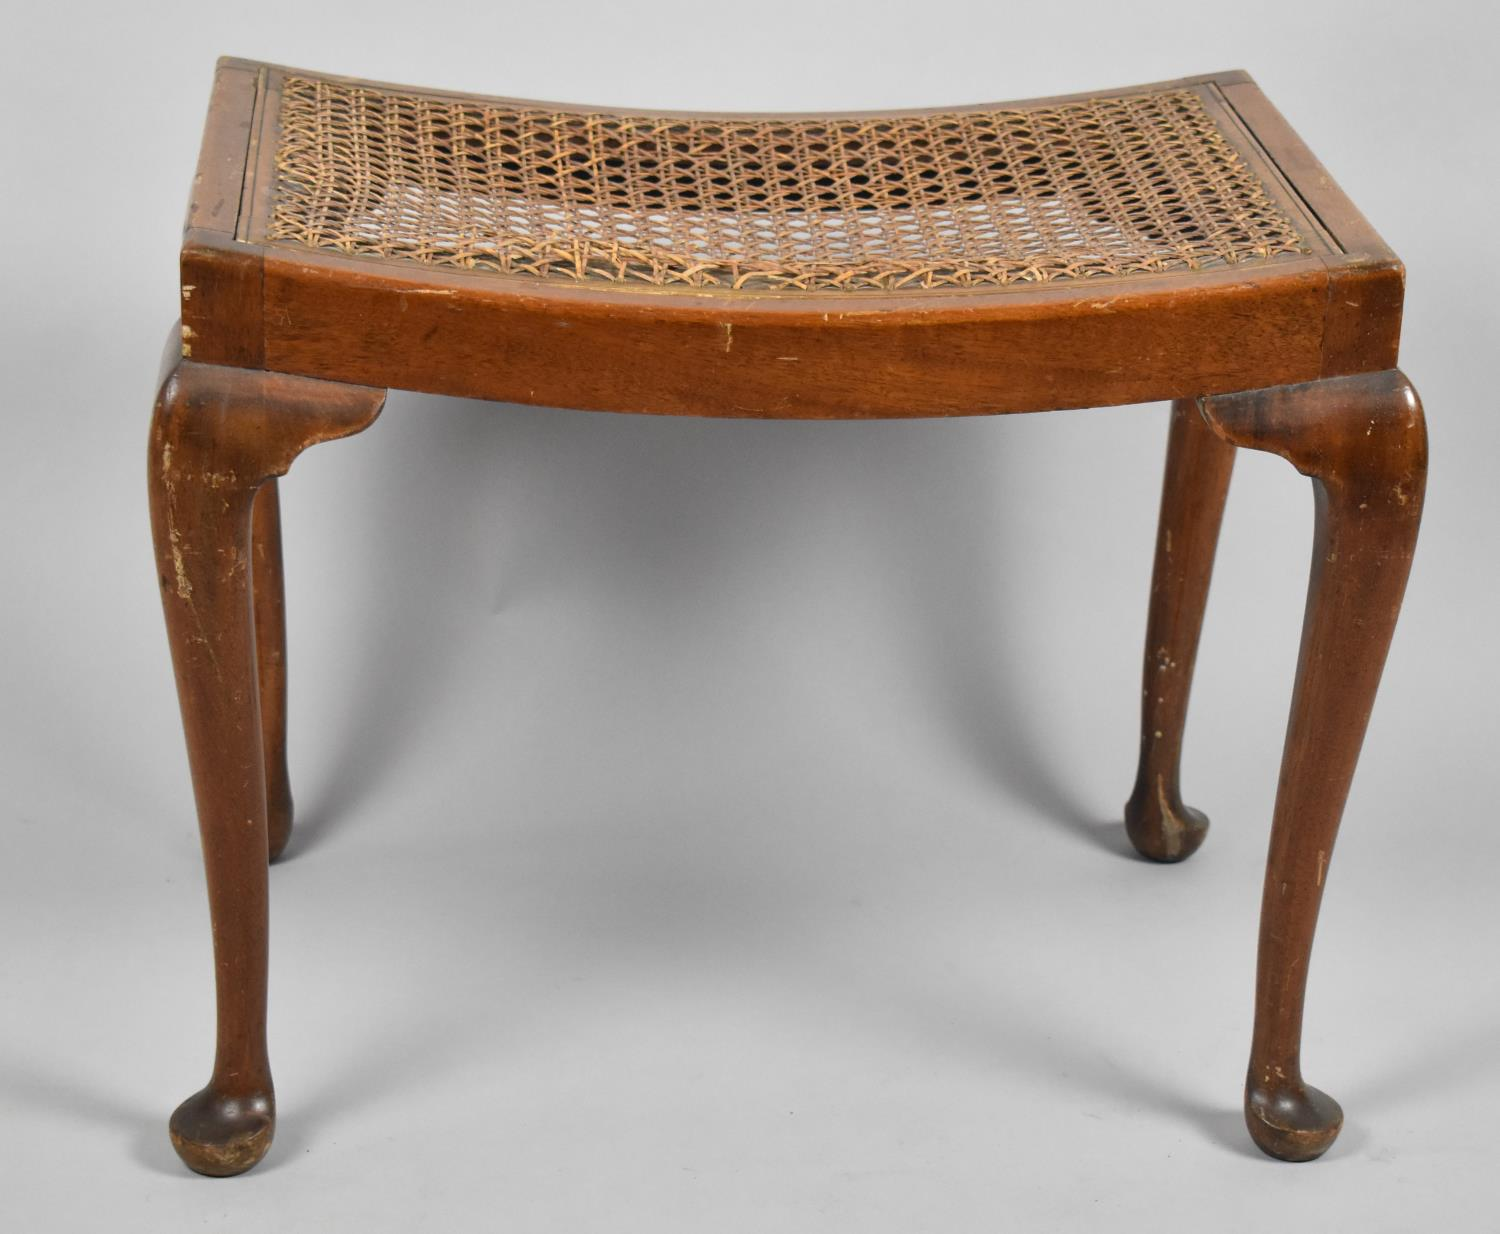 A Mid 20th Century Walnut Framed Rectangular Stool on Cabriole Supports, Requires Recaning, 56cm